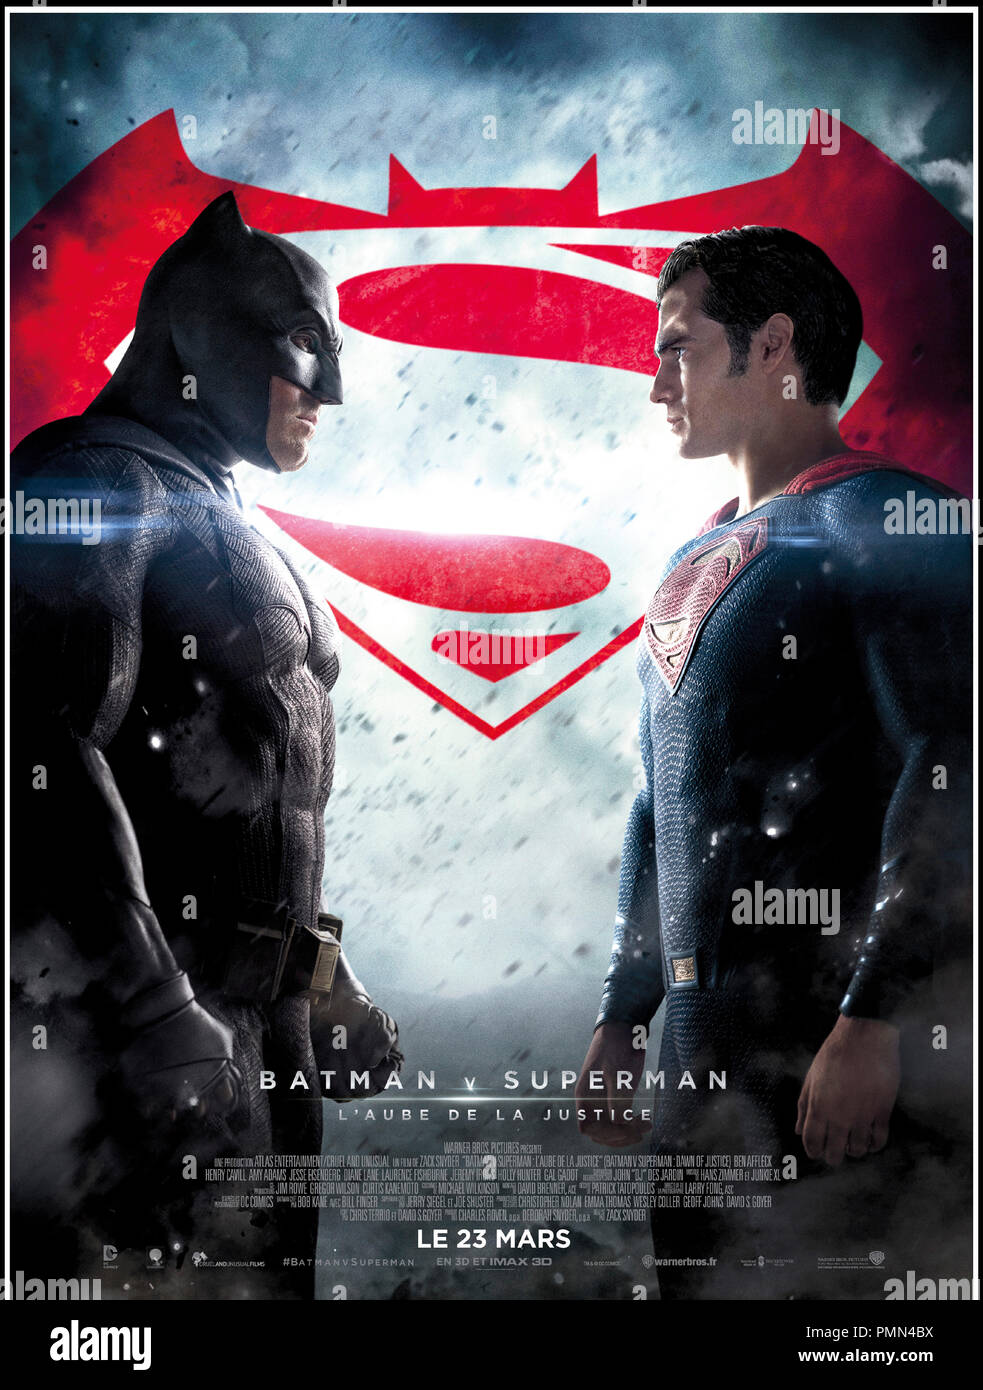 Prod DB © Warner Bros. - DC Entertainment - RatPac-Dune Entertainment - Syncopy / DR BATMAN V SUPERMAN: L'AUBE DE LA JUSTICE (BATMAN VS. SUPERMAN: DAWN OF JUSTICE) de Zack Snyder 2016 USA affiche française super heros d'apres les personnages créés par Bob Kane et Bill Finger (Batman) et Jerry Siegel et Joe Shuster (Superman) - Stock Image